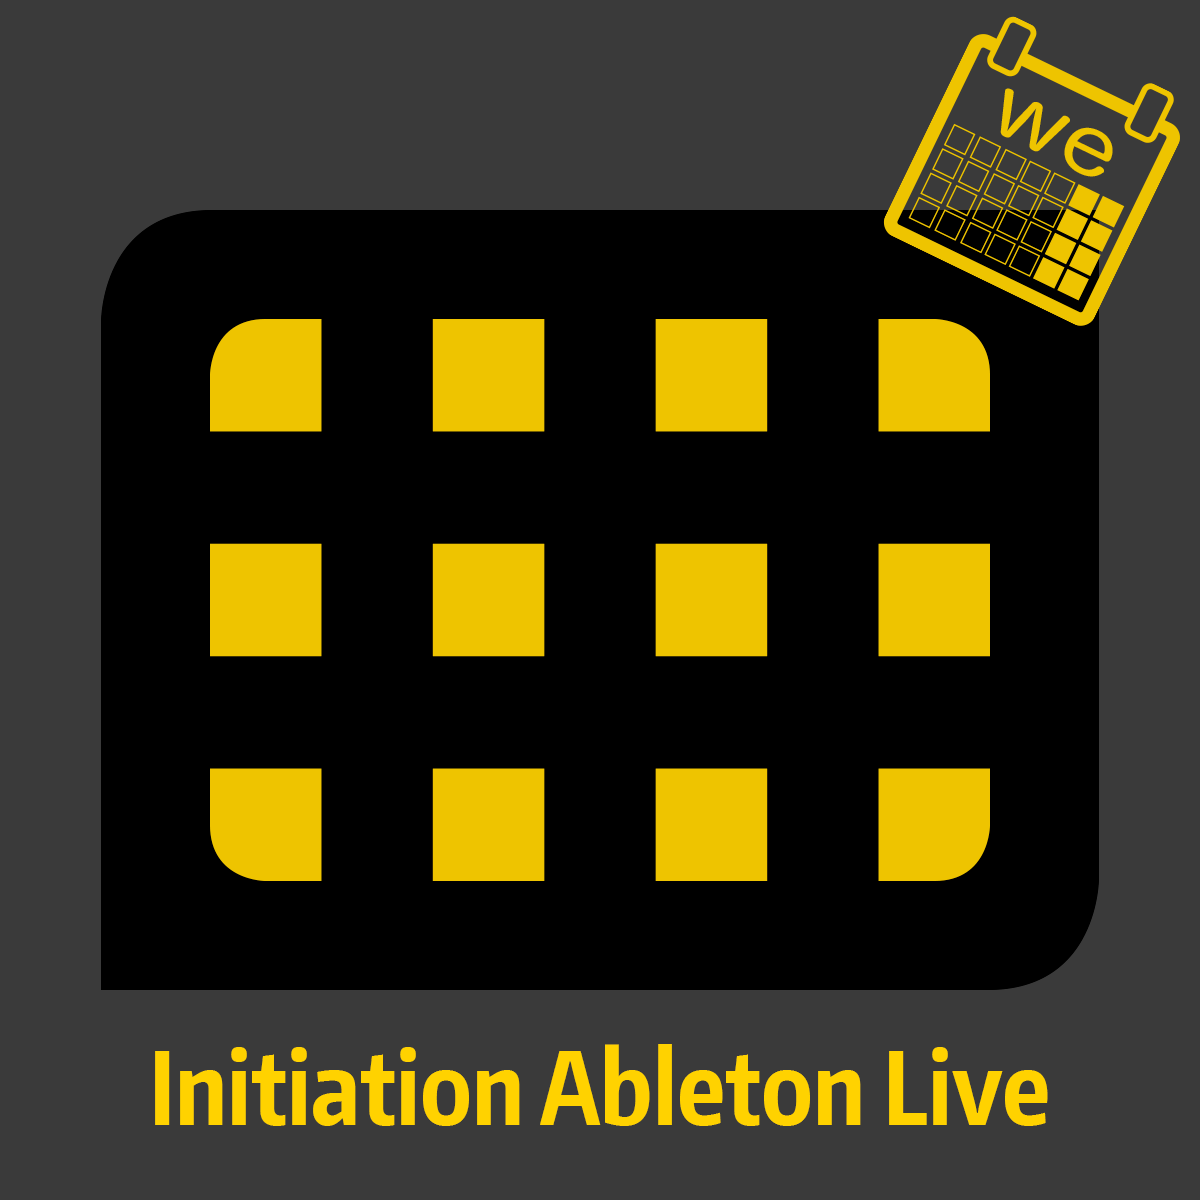 Formation week-end - Initiation Ableton Live